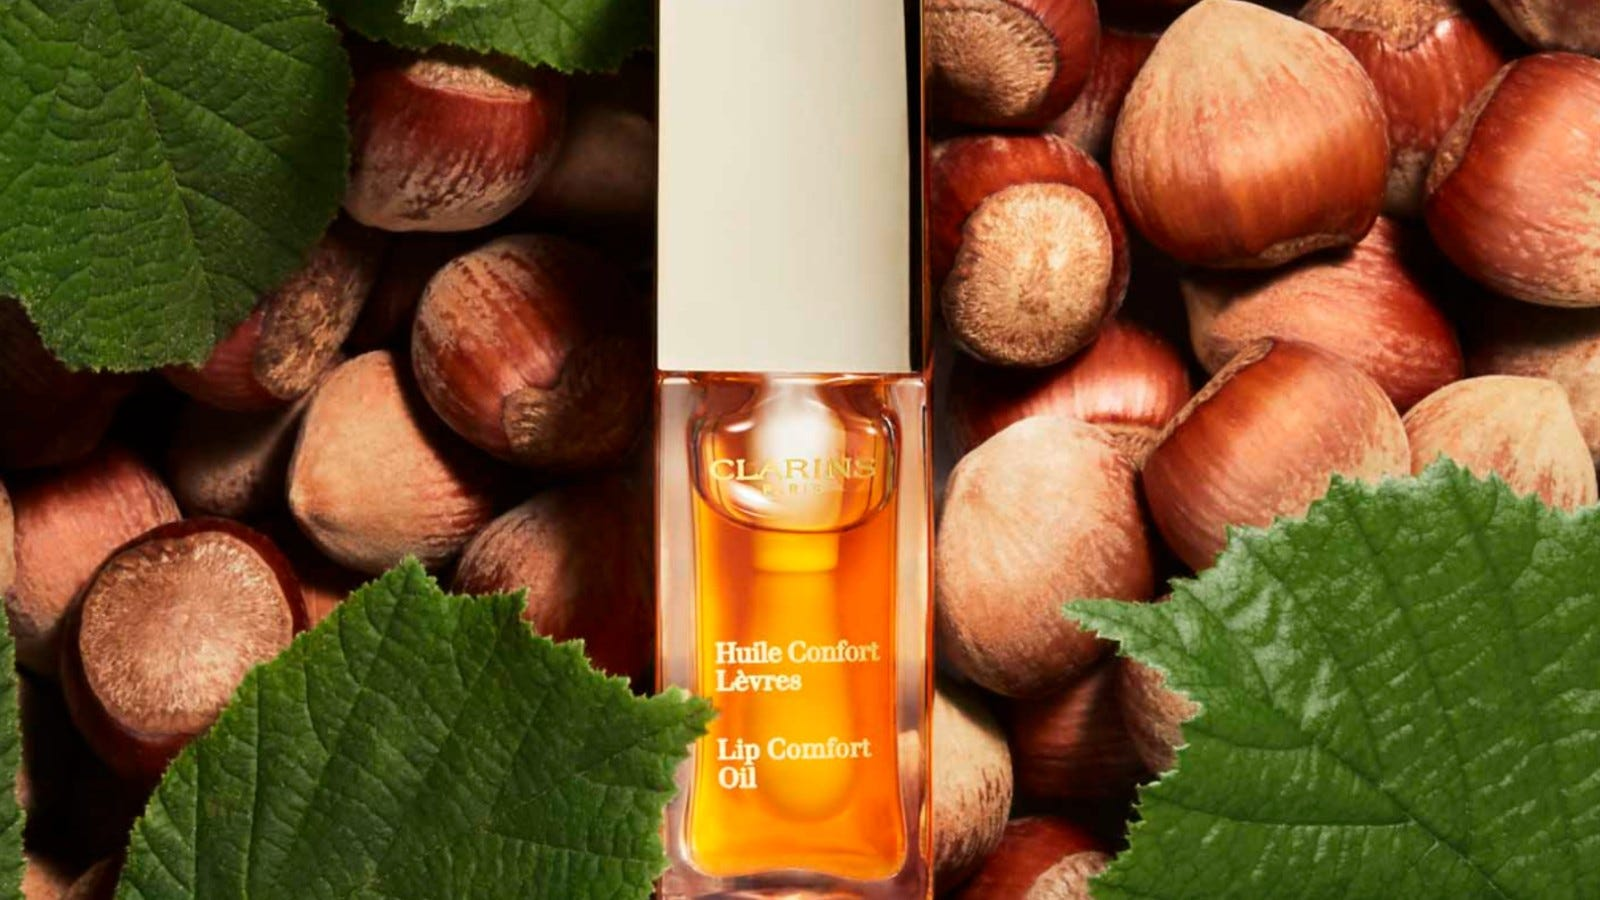 orange Clarins lip oil on a background of leaves and hazelnuts